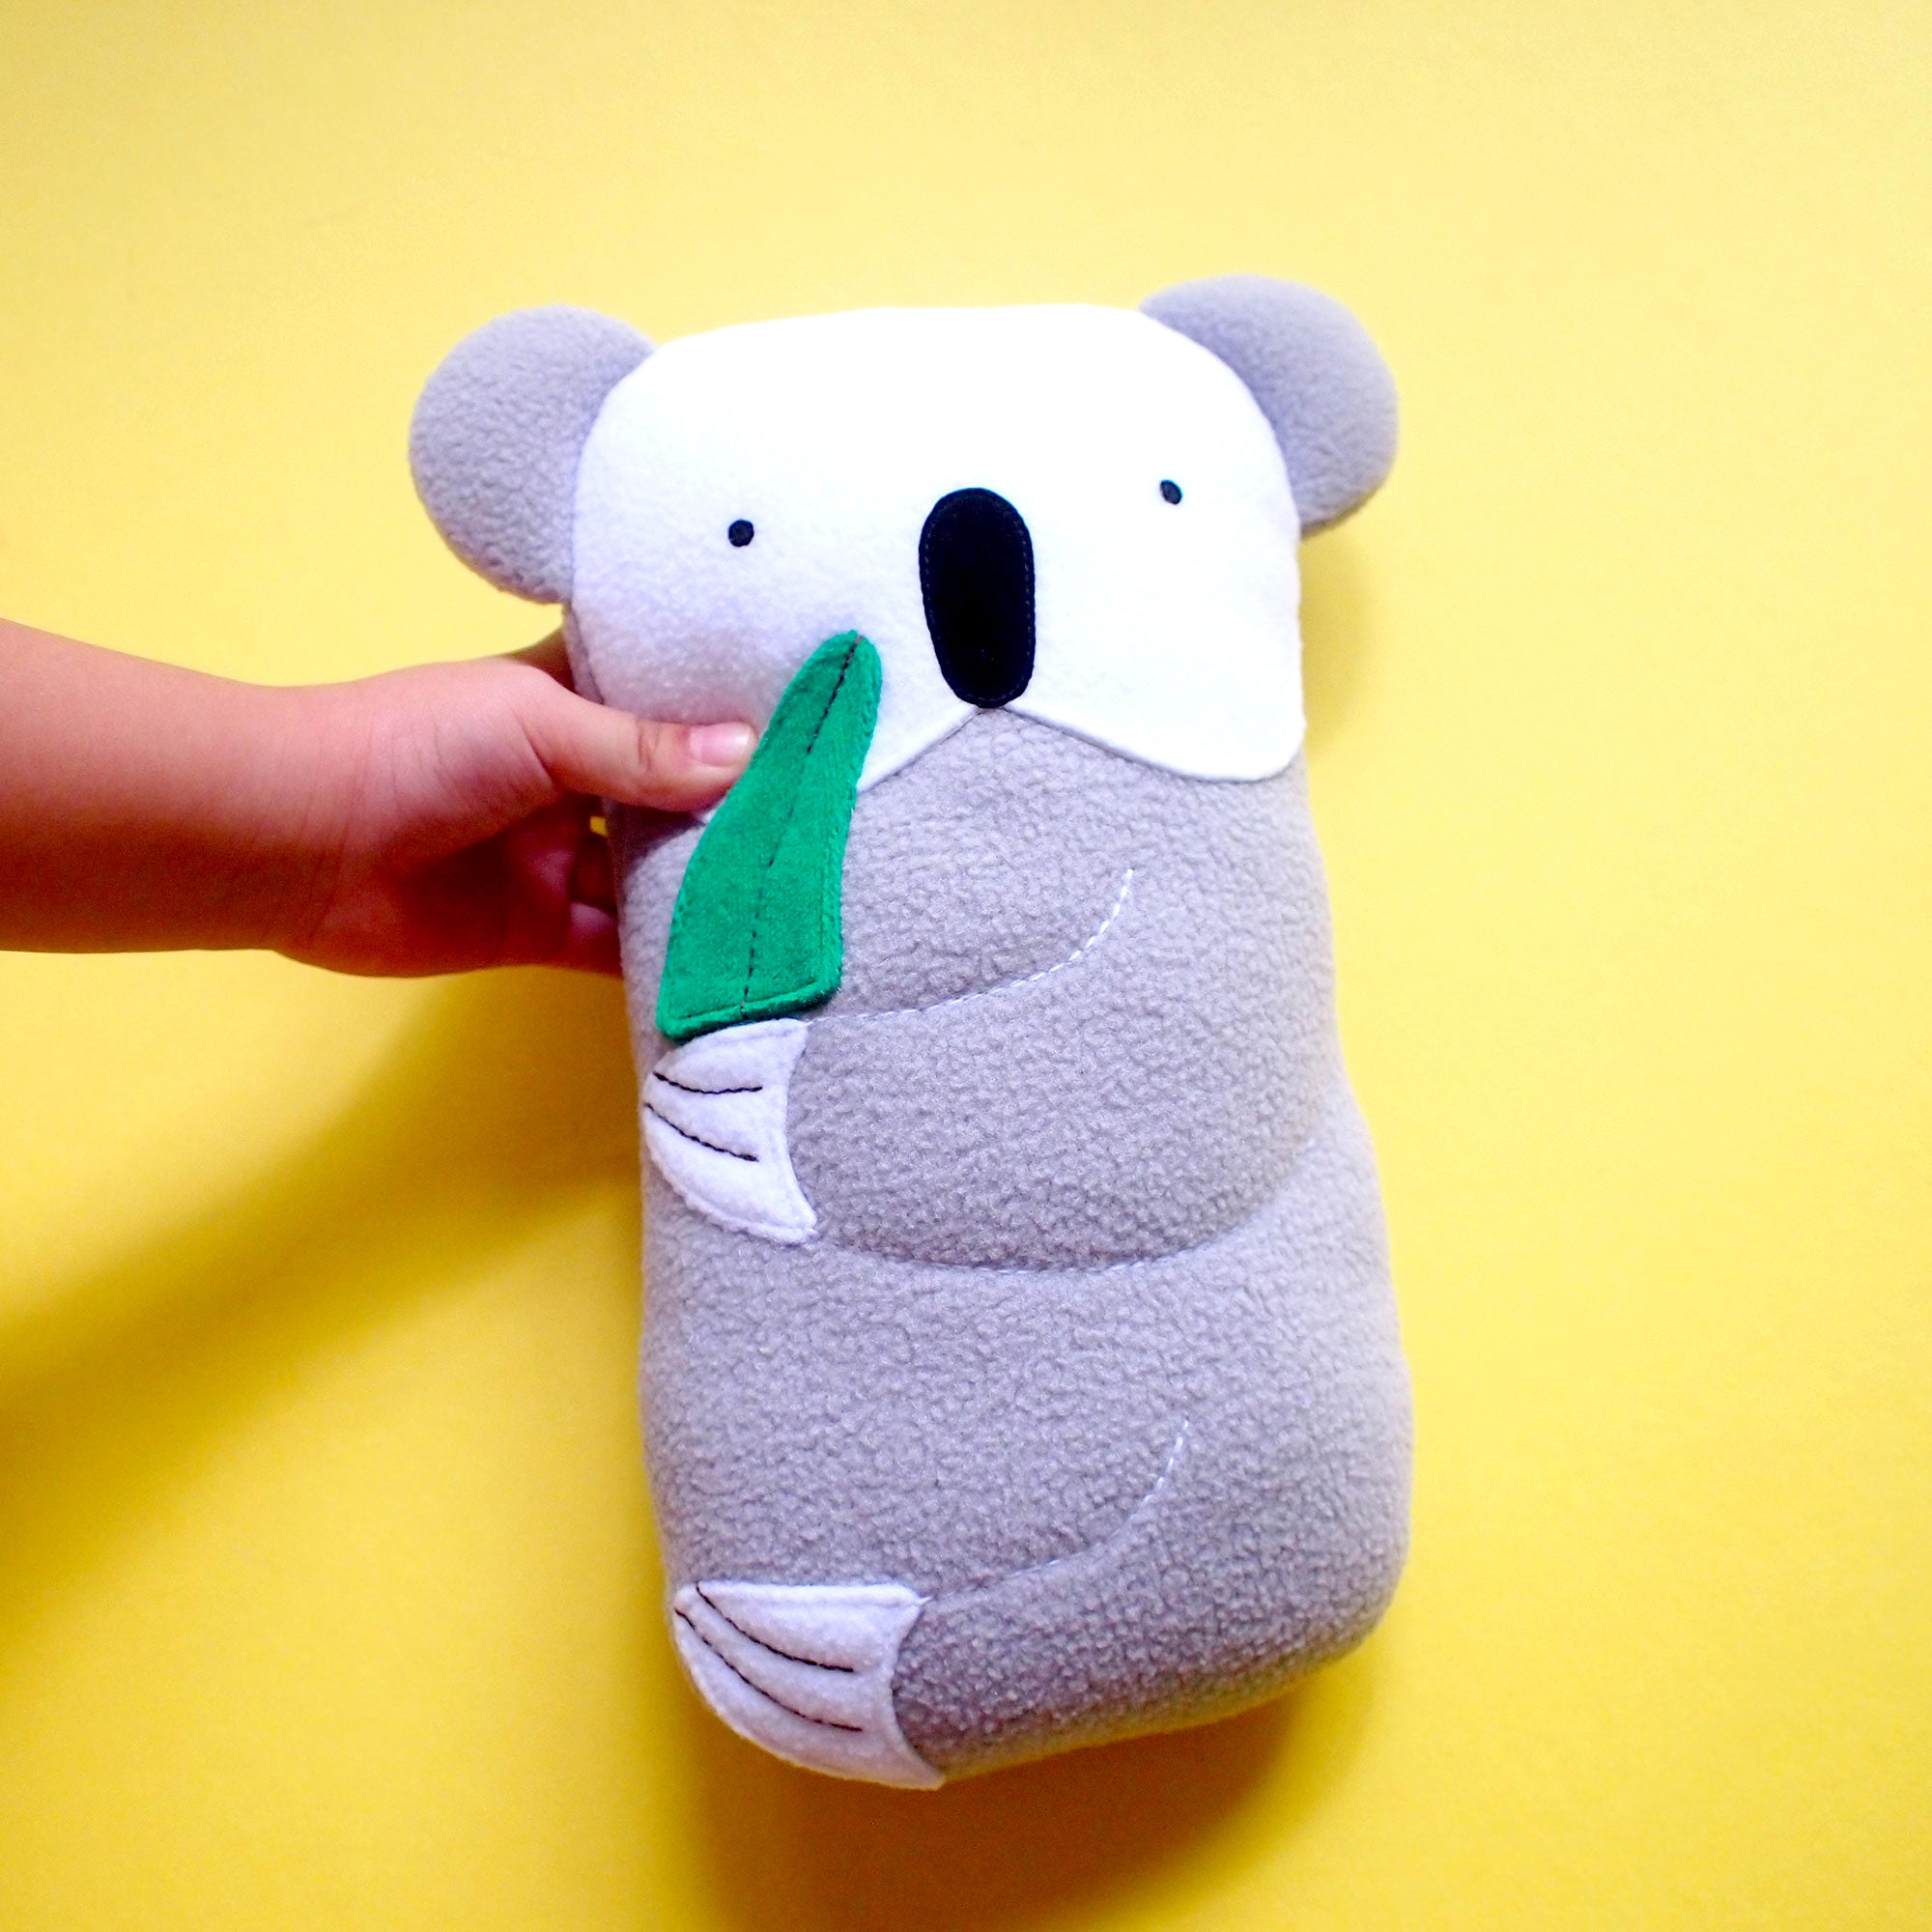 Plush Toy - Koala Loves Eucalyptus (Smaller)